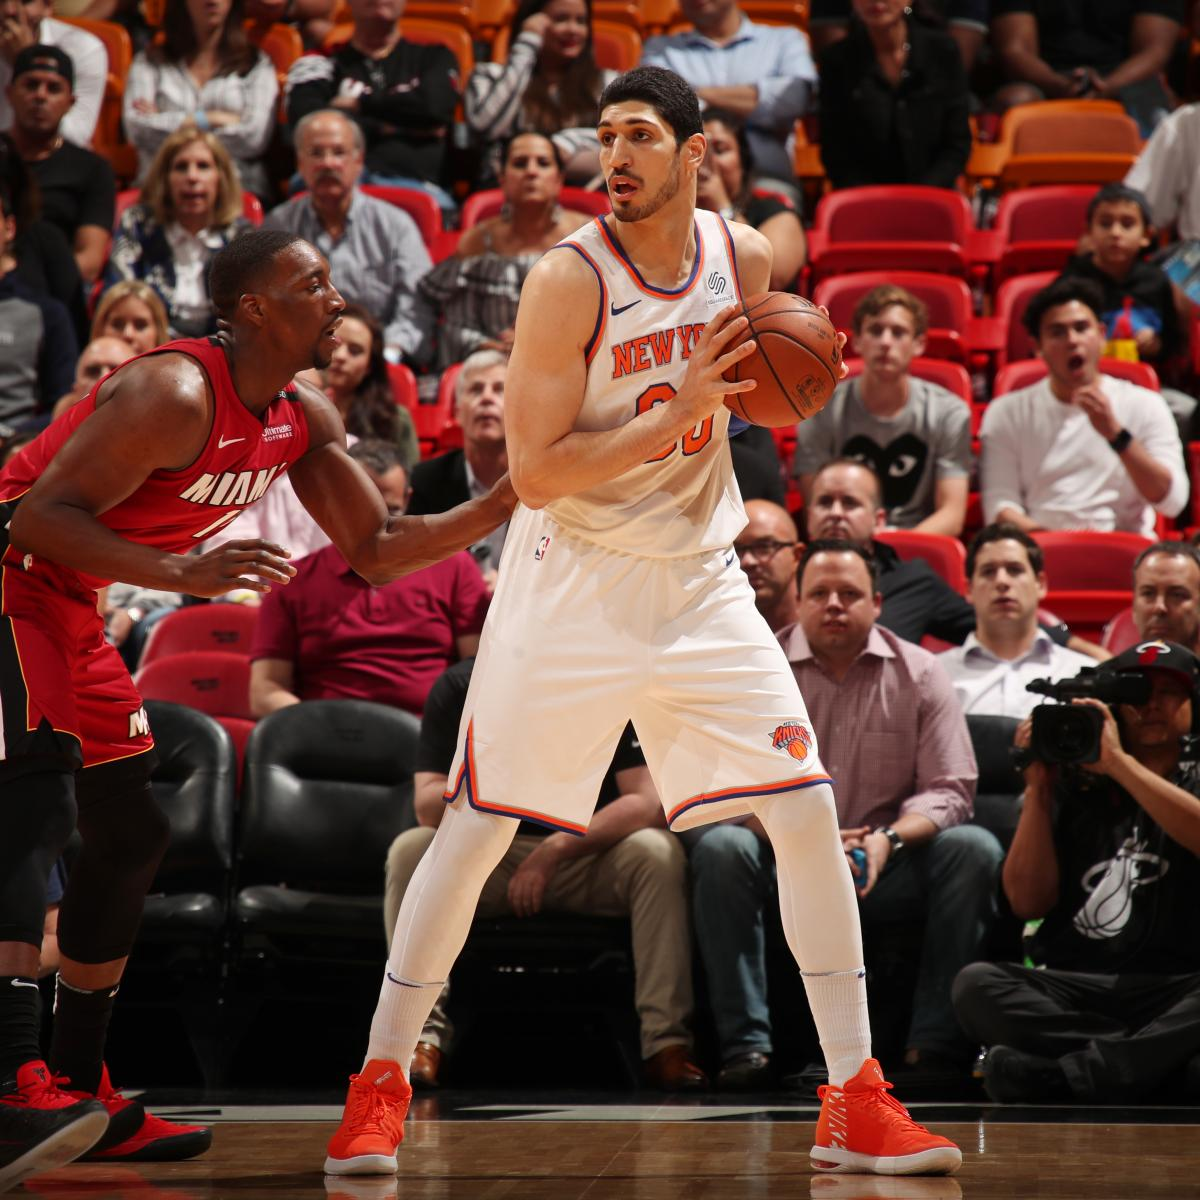 Blazers Kanter Contract: Knicks News: Enes Kanter Seeks Long-Term Contract To 'Feel